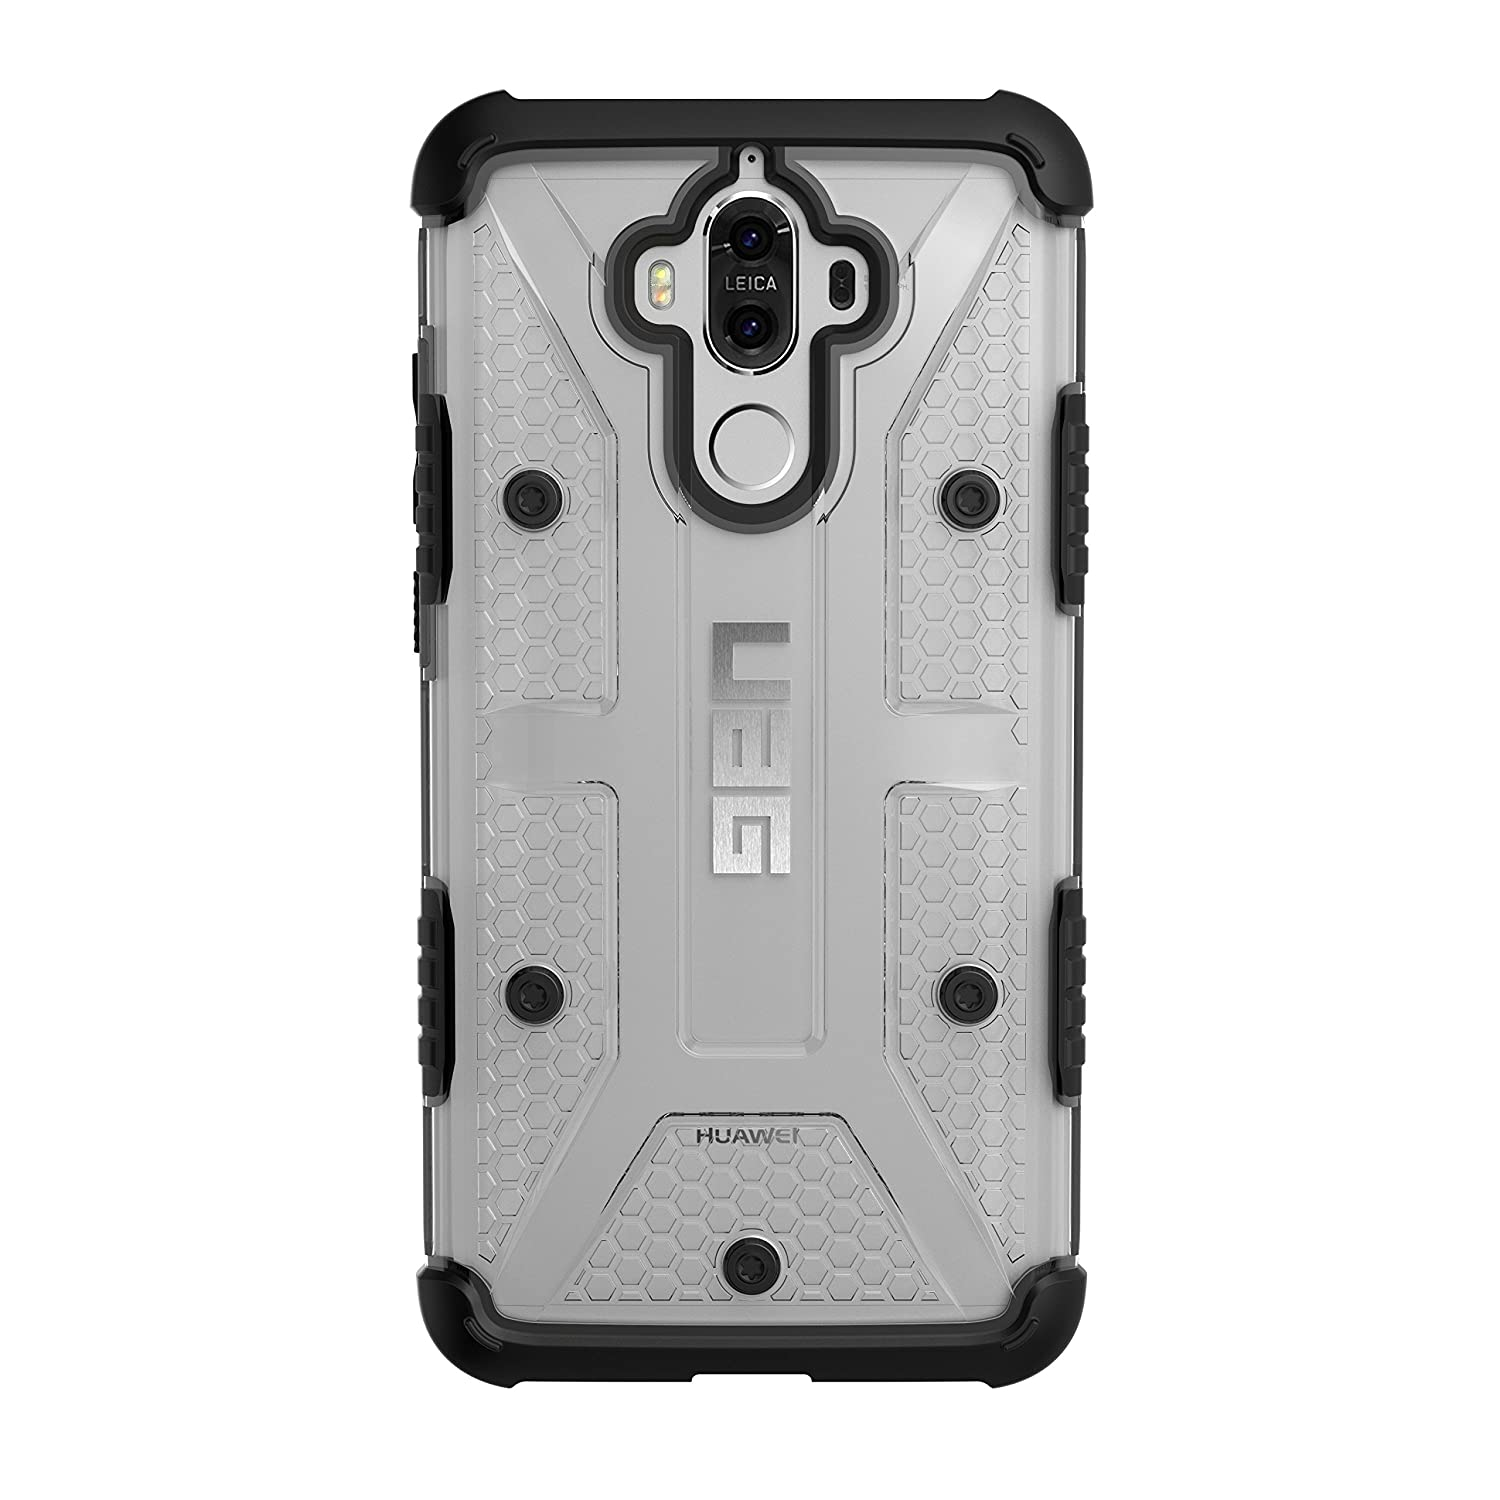 Galaxy s6 cases shop samsung cases online uag urban armor gear - Amazon Com Uag Huawei Mate 9 5 9 Inch Screen Plasma Feather Light Rugged Ice Military Drop Tested Phone Case Cell Phones Accessories